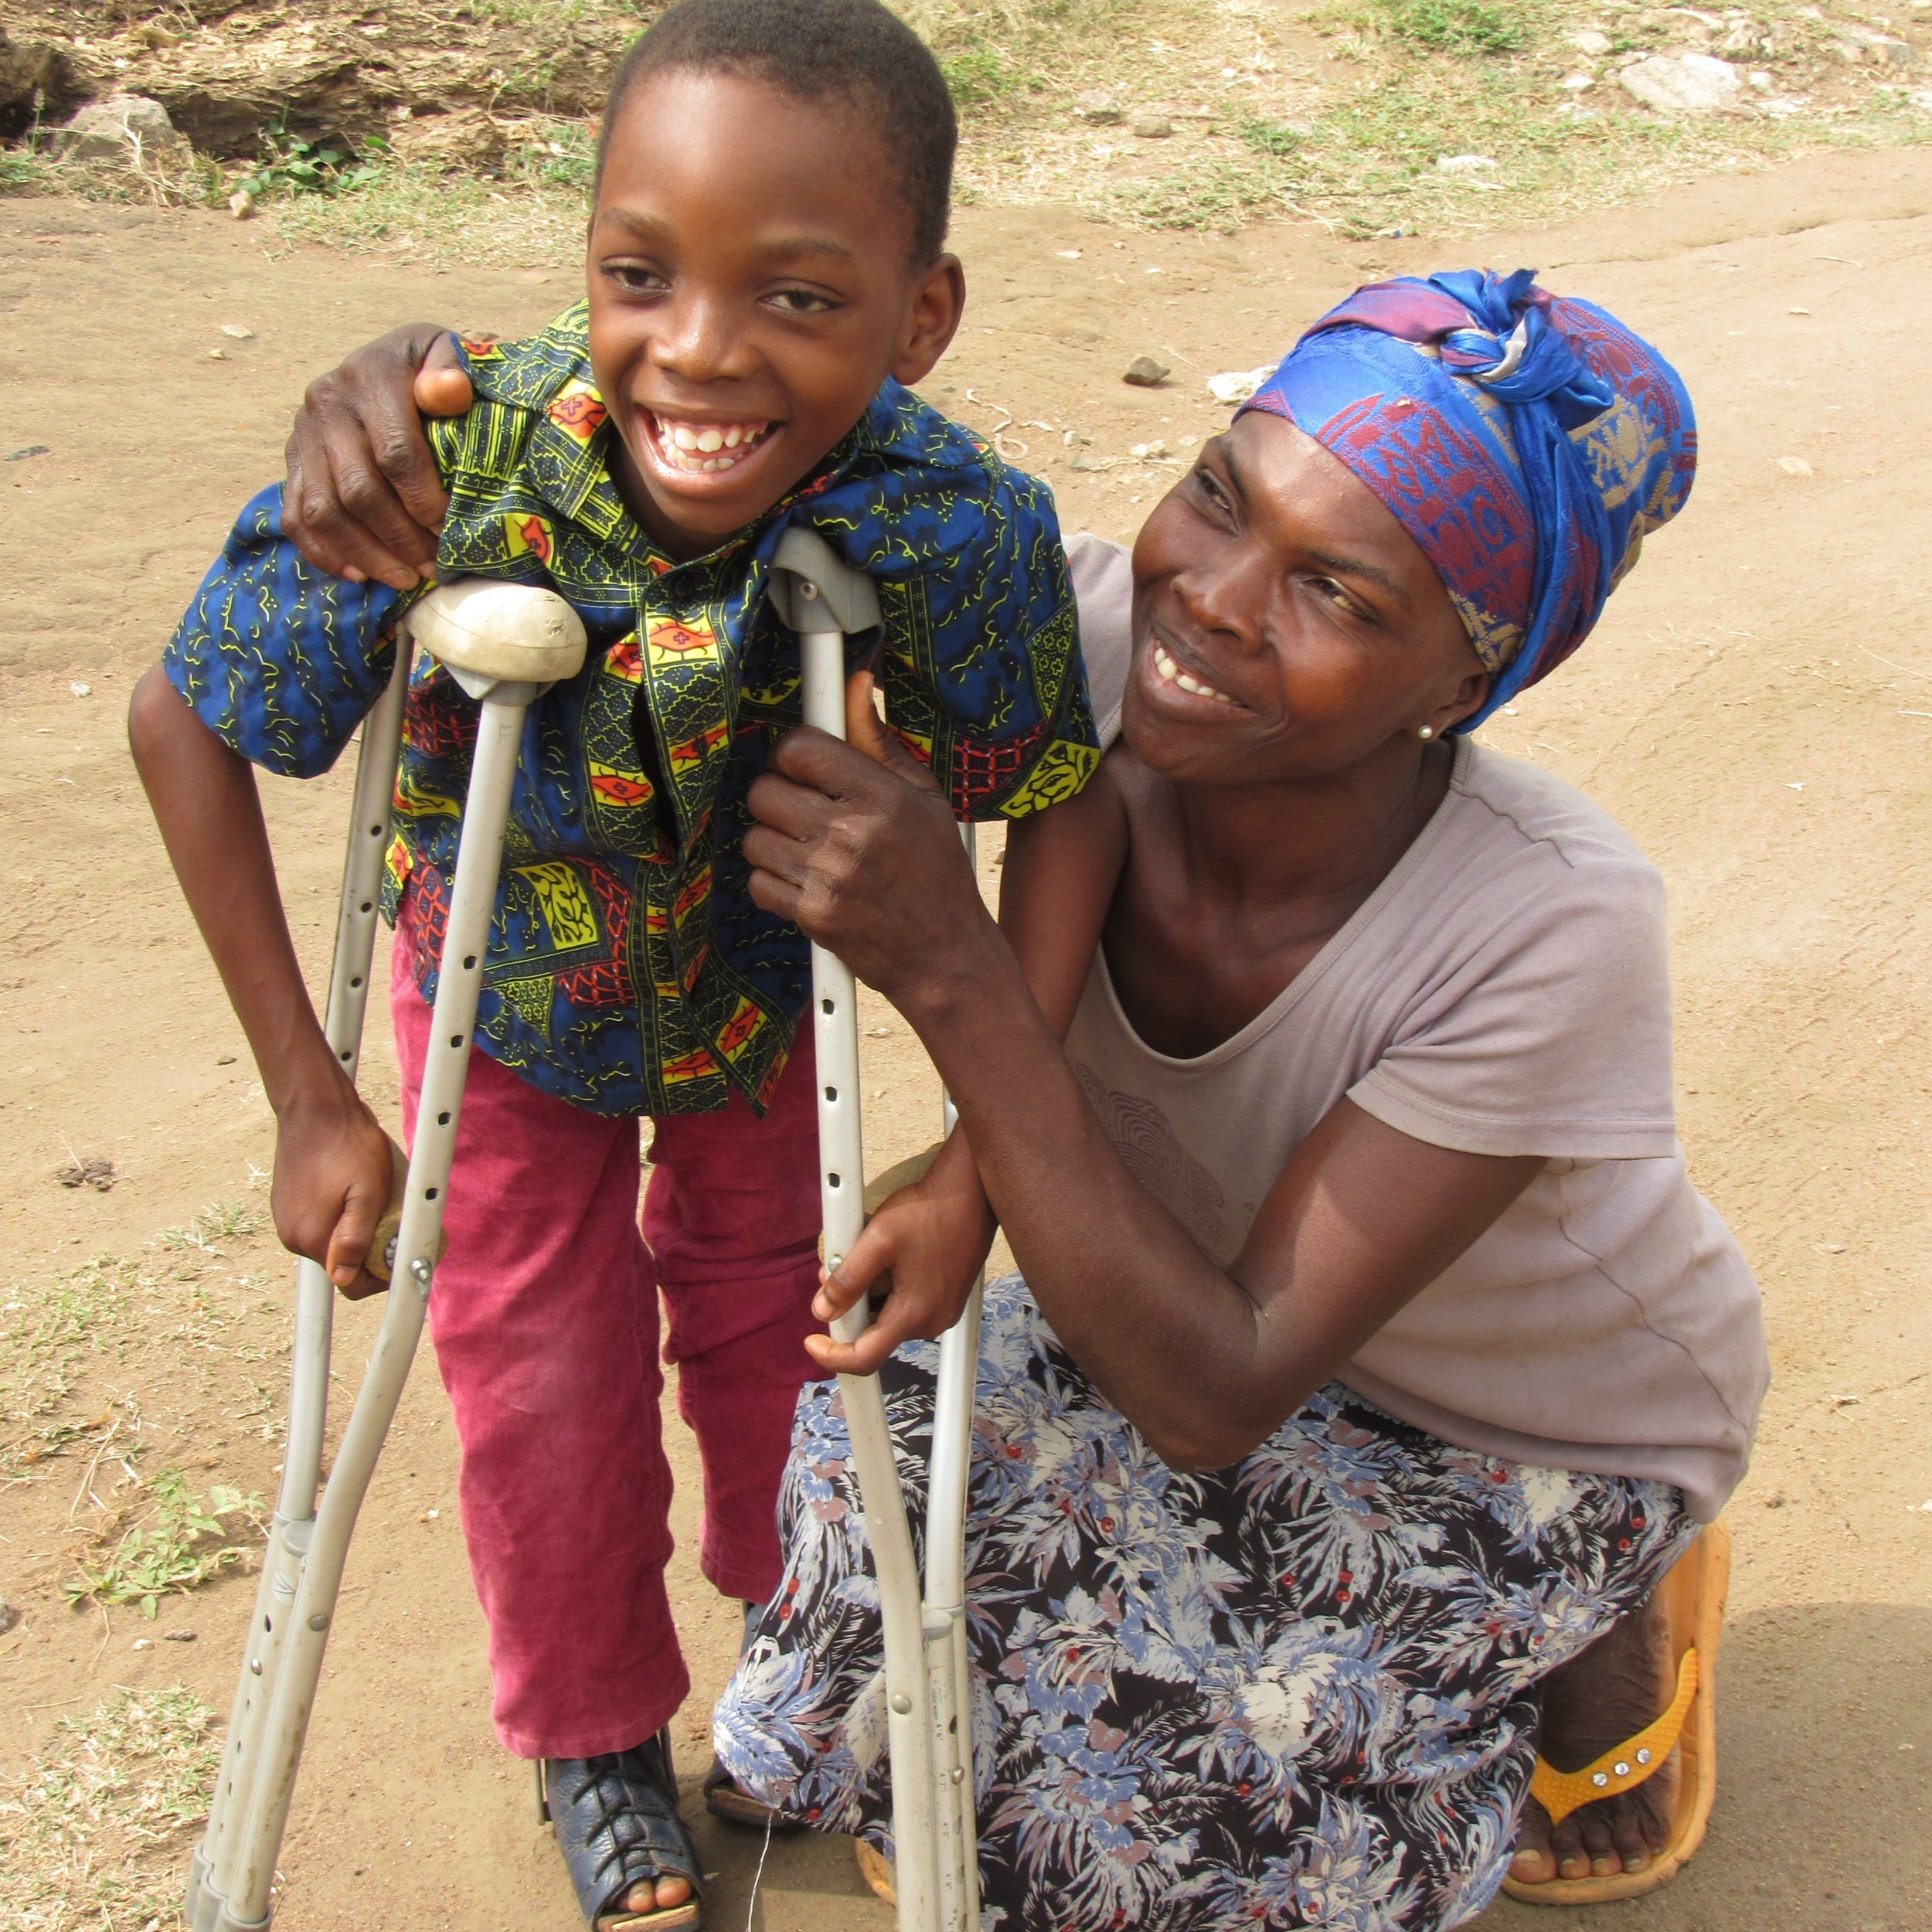 Together We Can Make A Difference.. - This happy boy, along with several others, received his very own Acacia Shade Learning Tablet! The tablets are given to enhance each child's education. The Acacia Shade Learning Tablets are just one example of how Acacia Shade, with your help, can enrich the lives of others.